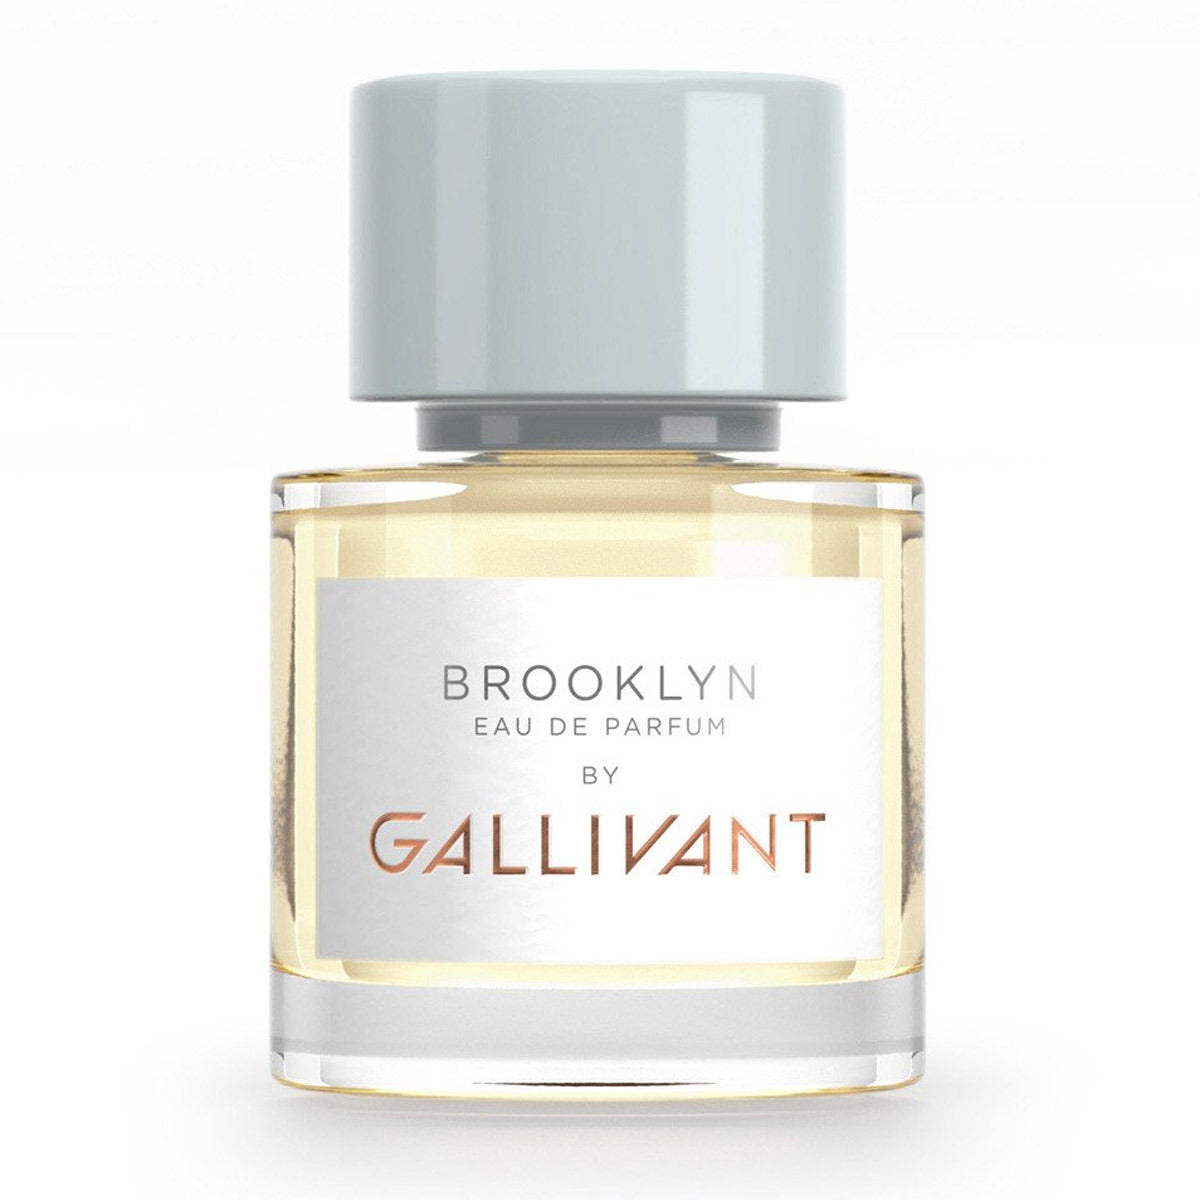 Niche Fragrance for Summer | GALLIVANT Brooklyn Eau de Parfum